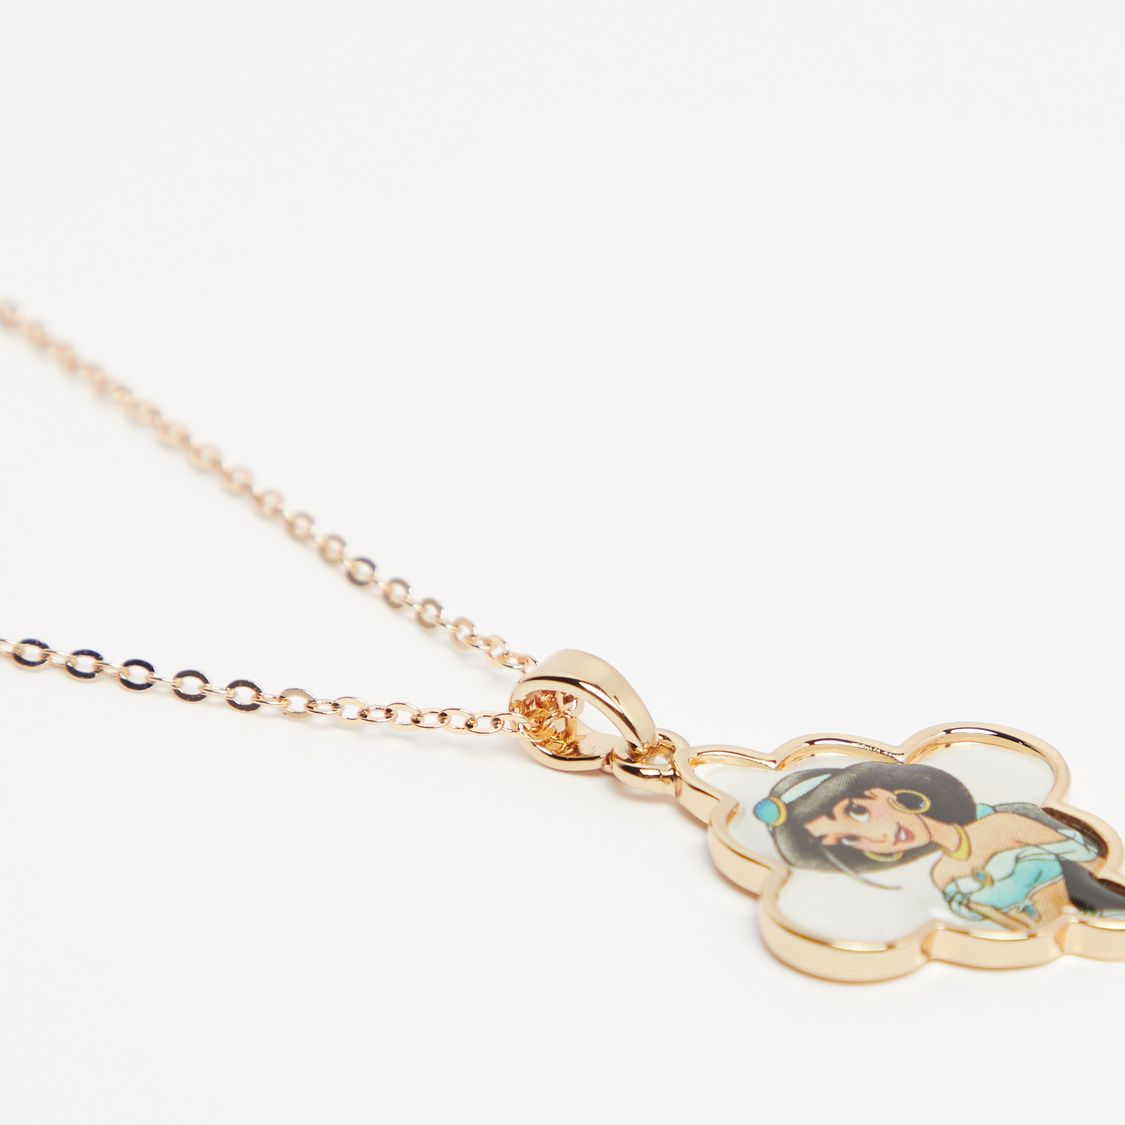 Jasmine Print Pendant Necklace with Lobster Clasp